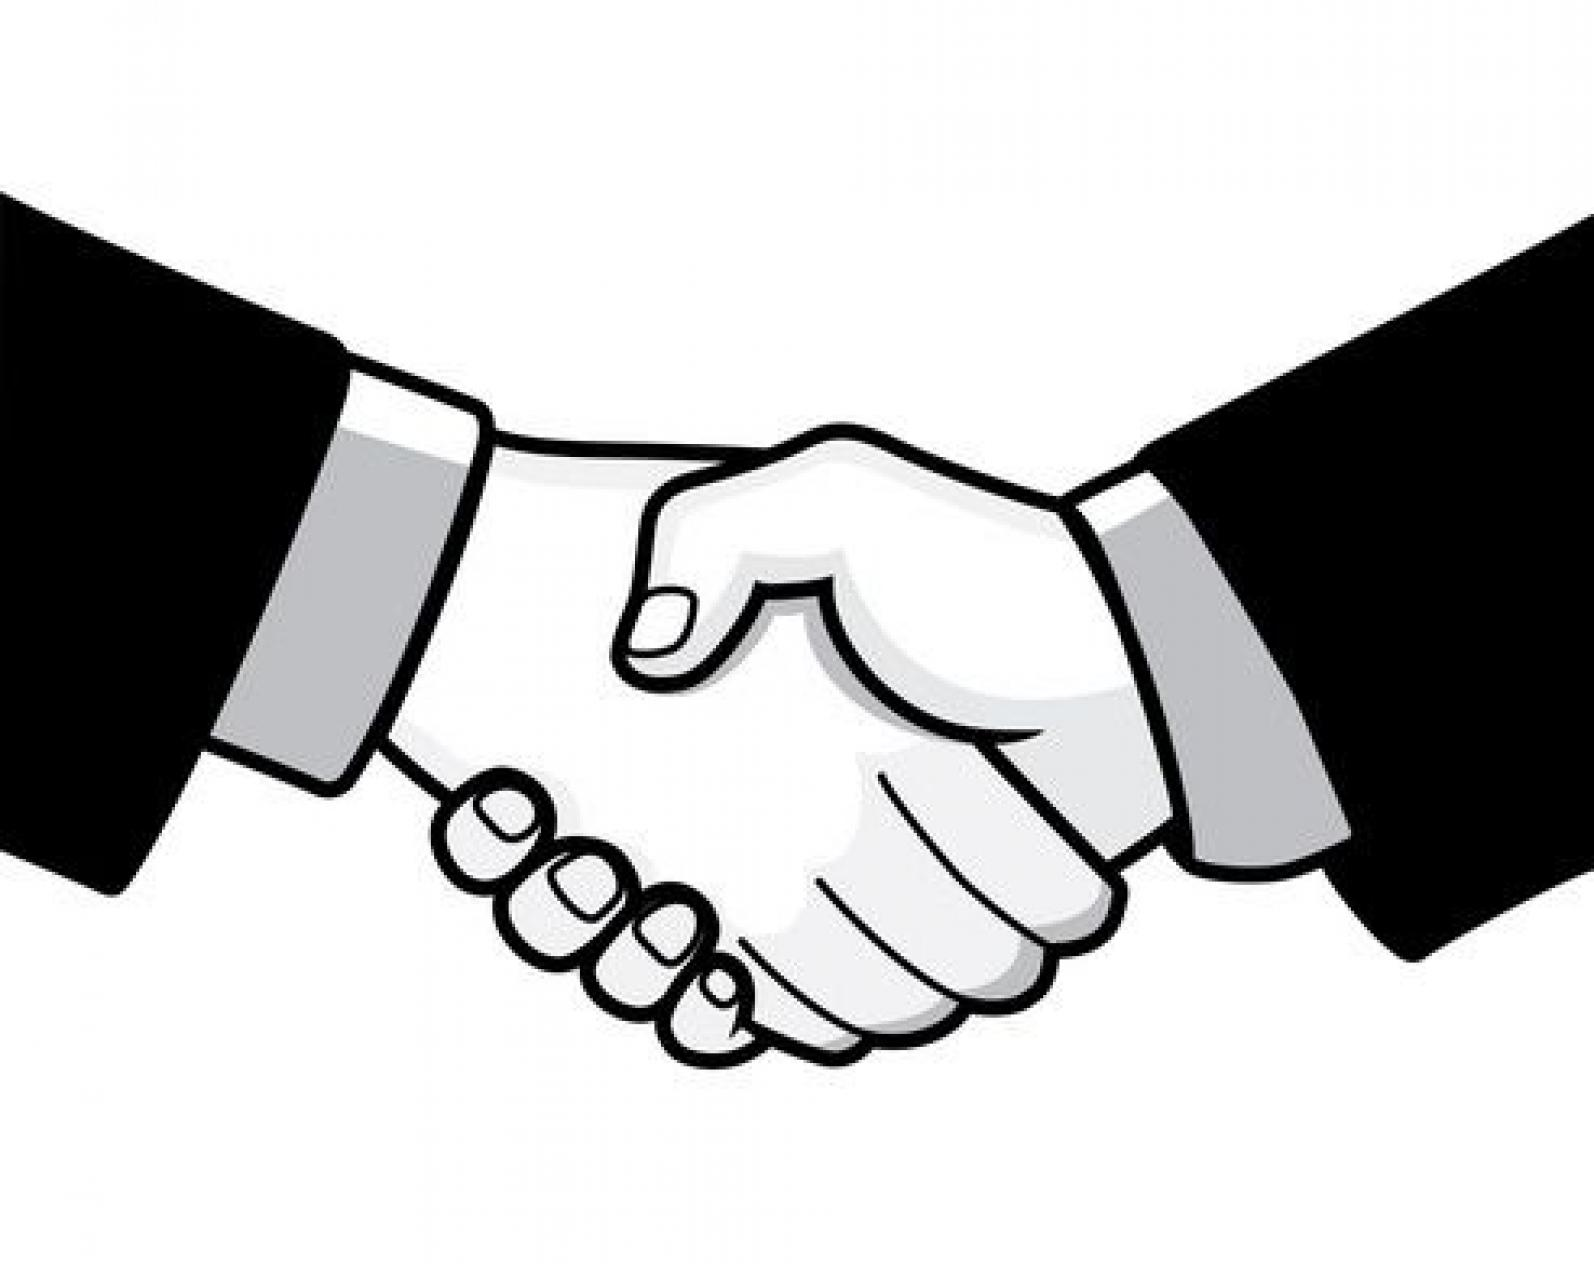 Handshake clipart welcome. Royalty free library the